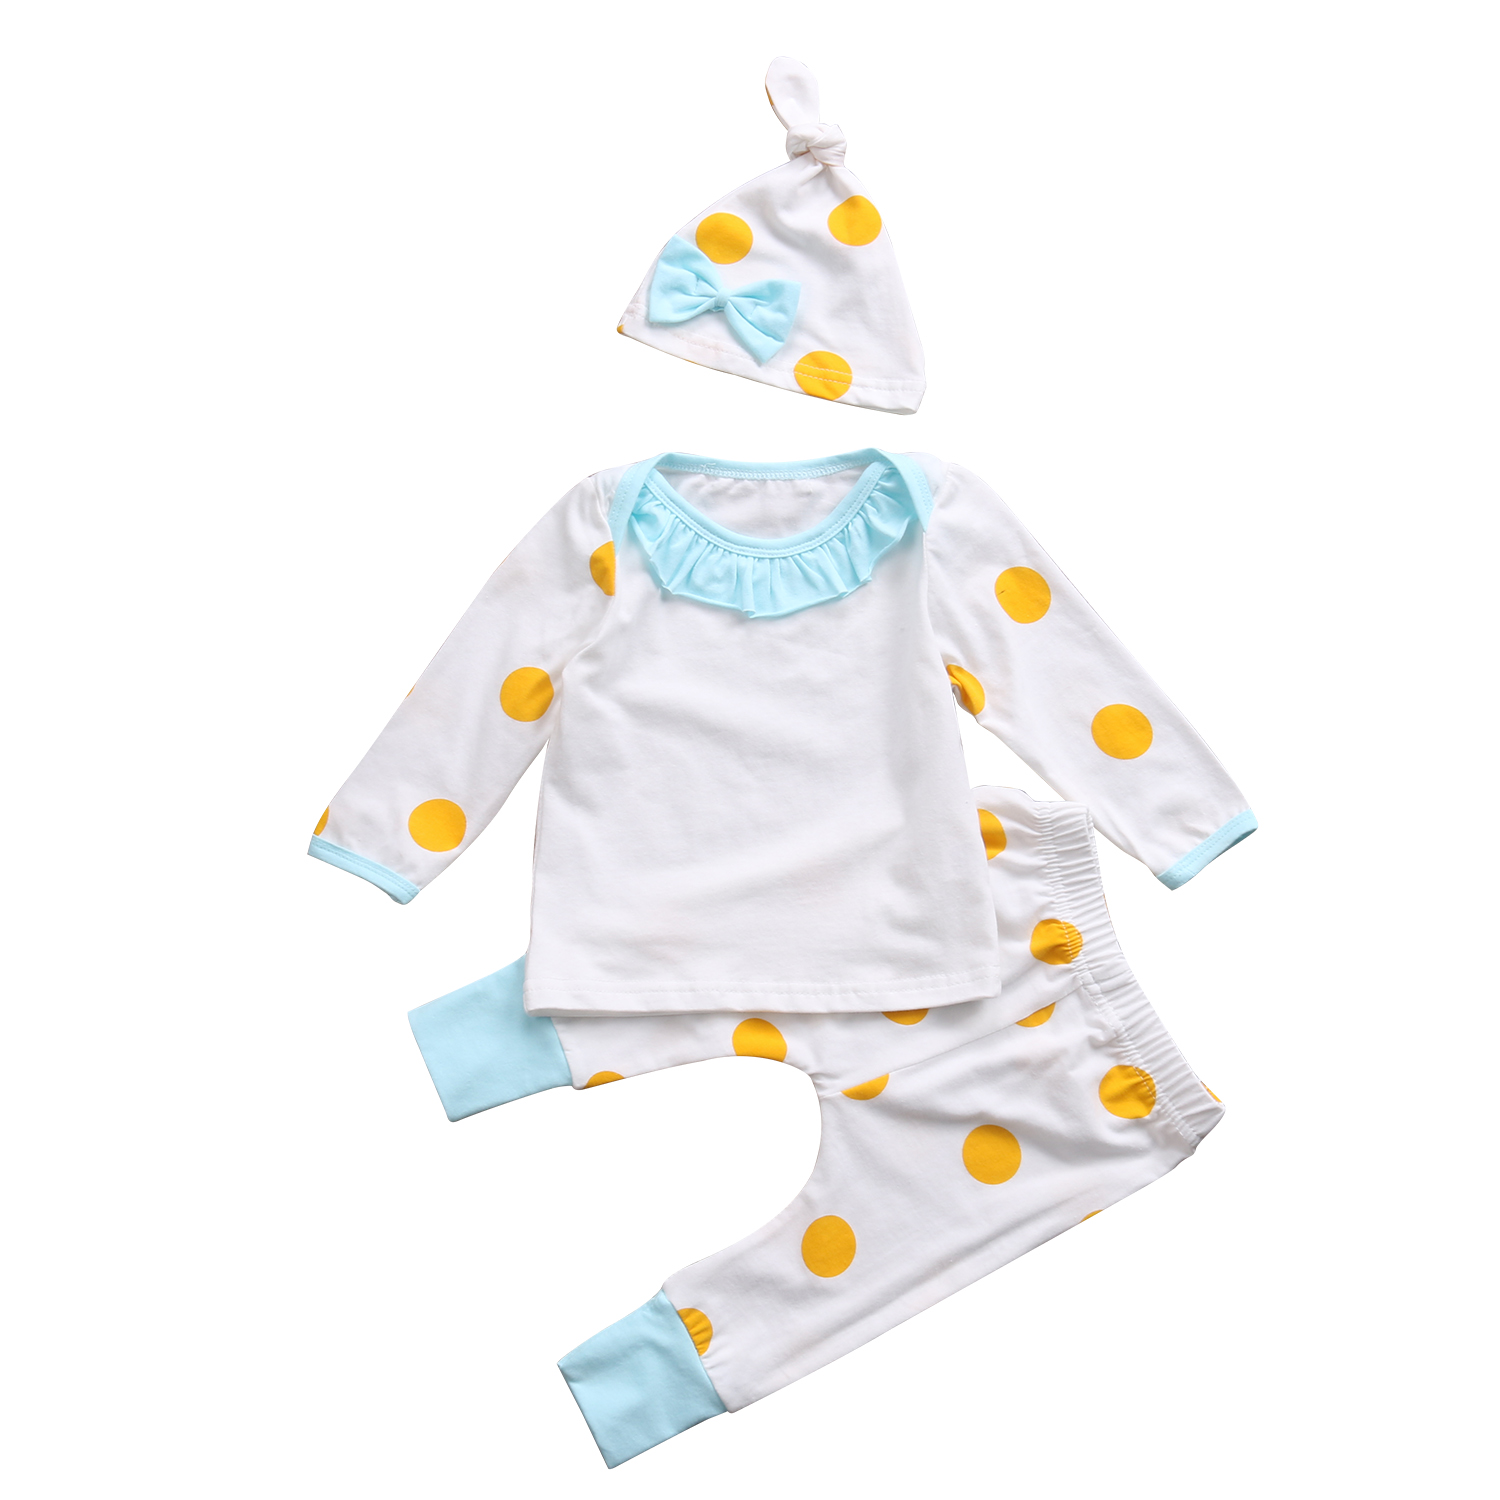 New Hot Sale Toddler Newborn Kids Baby Girls Outfits Clothes 3PCS Set Girl Dot Outfits Clothes